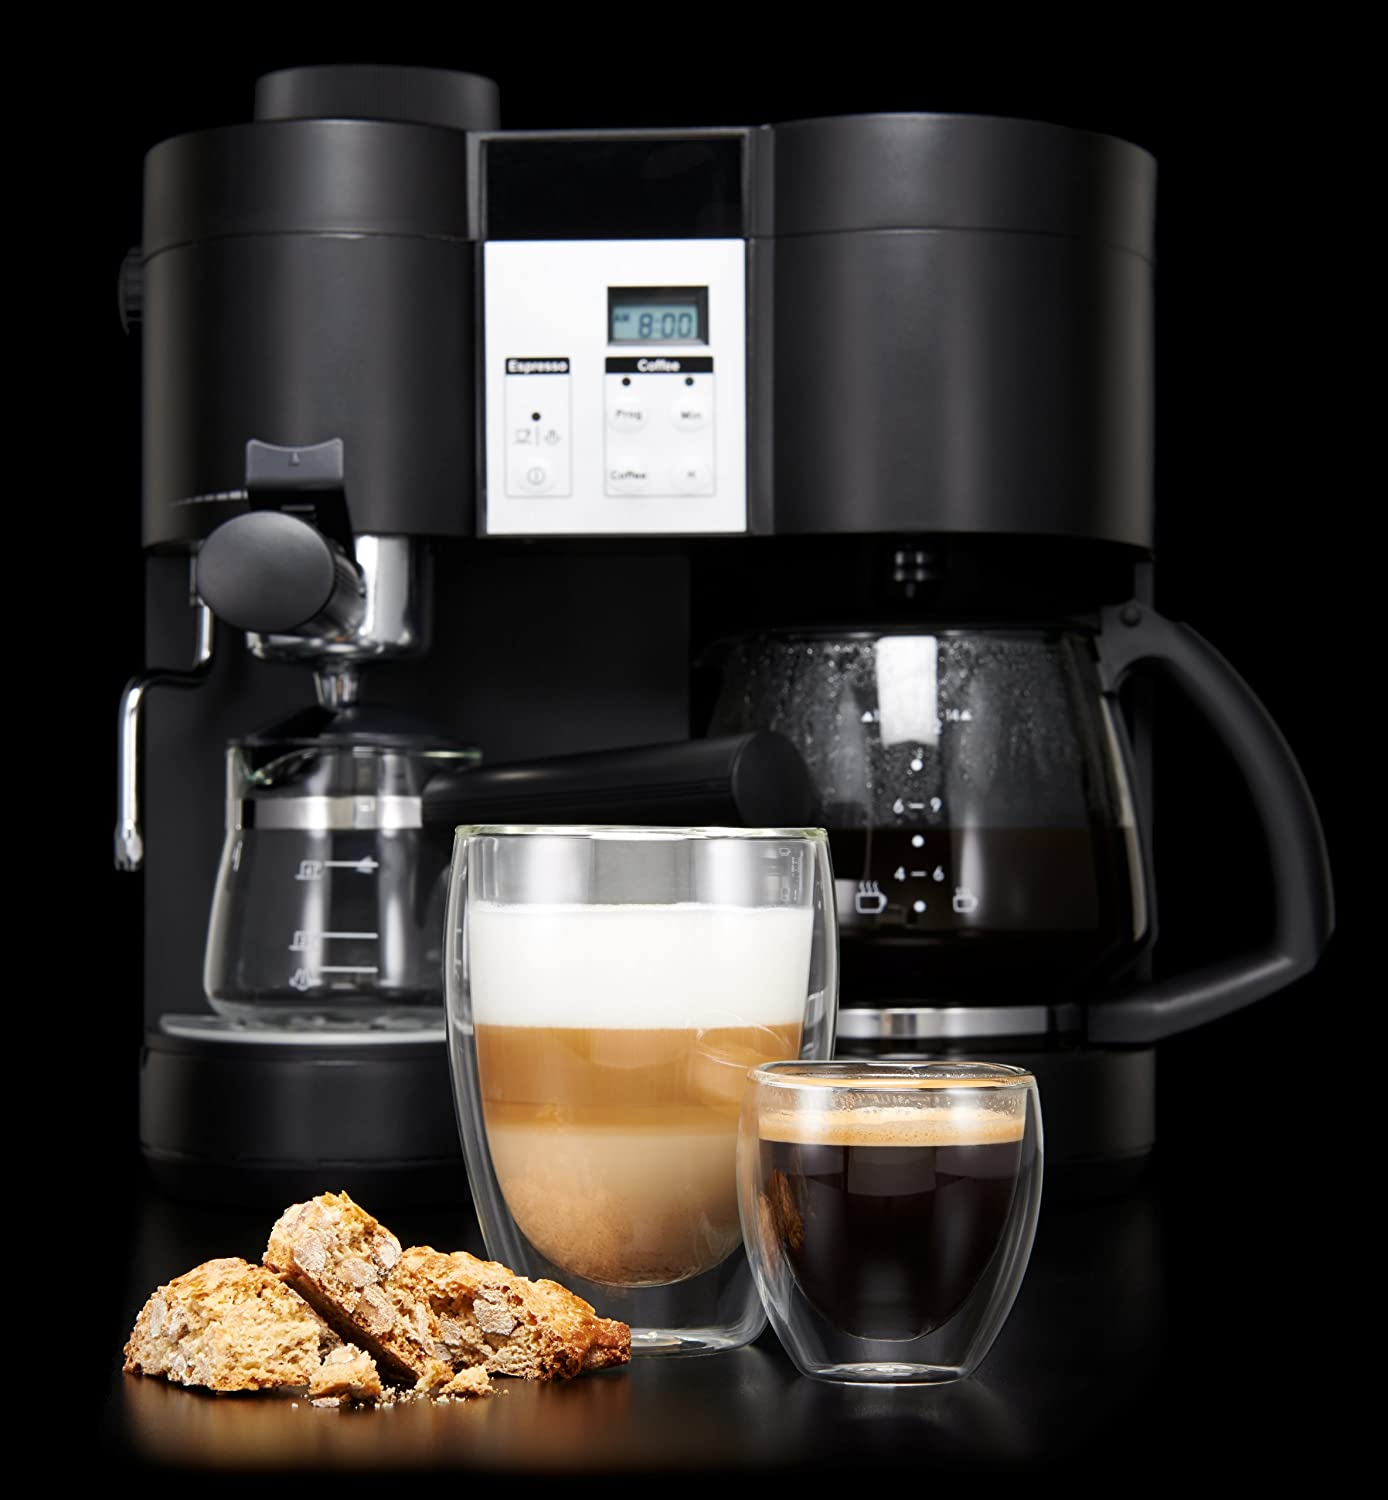 Best Espresso and Coffee Maker in 2020: Reviews & Buying Guide 11